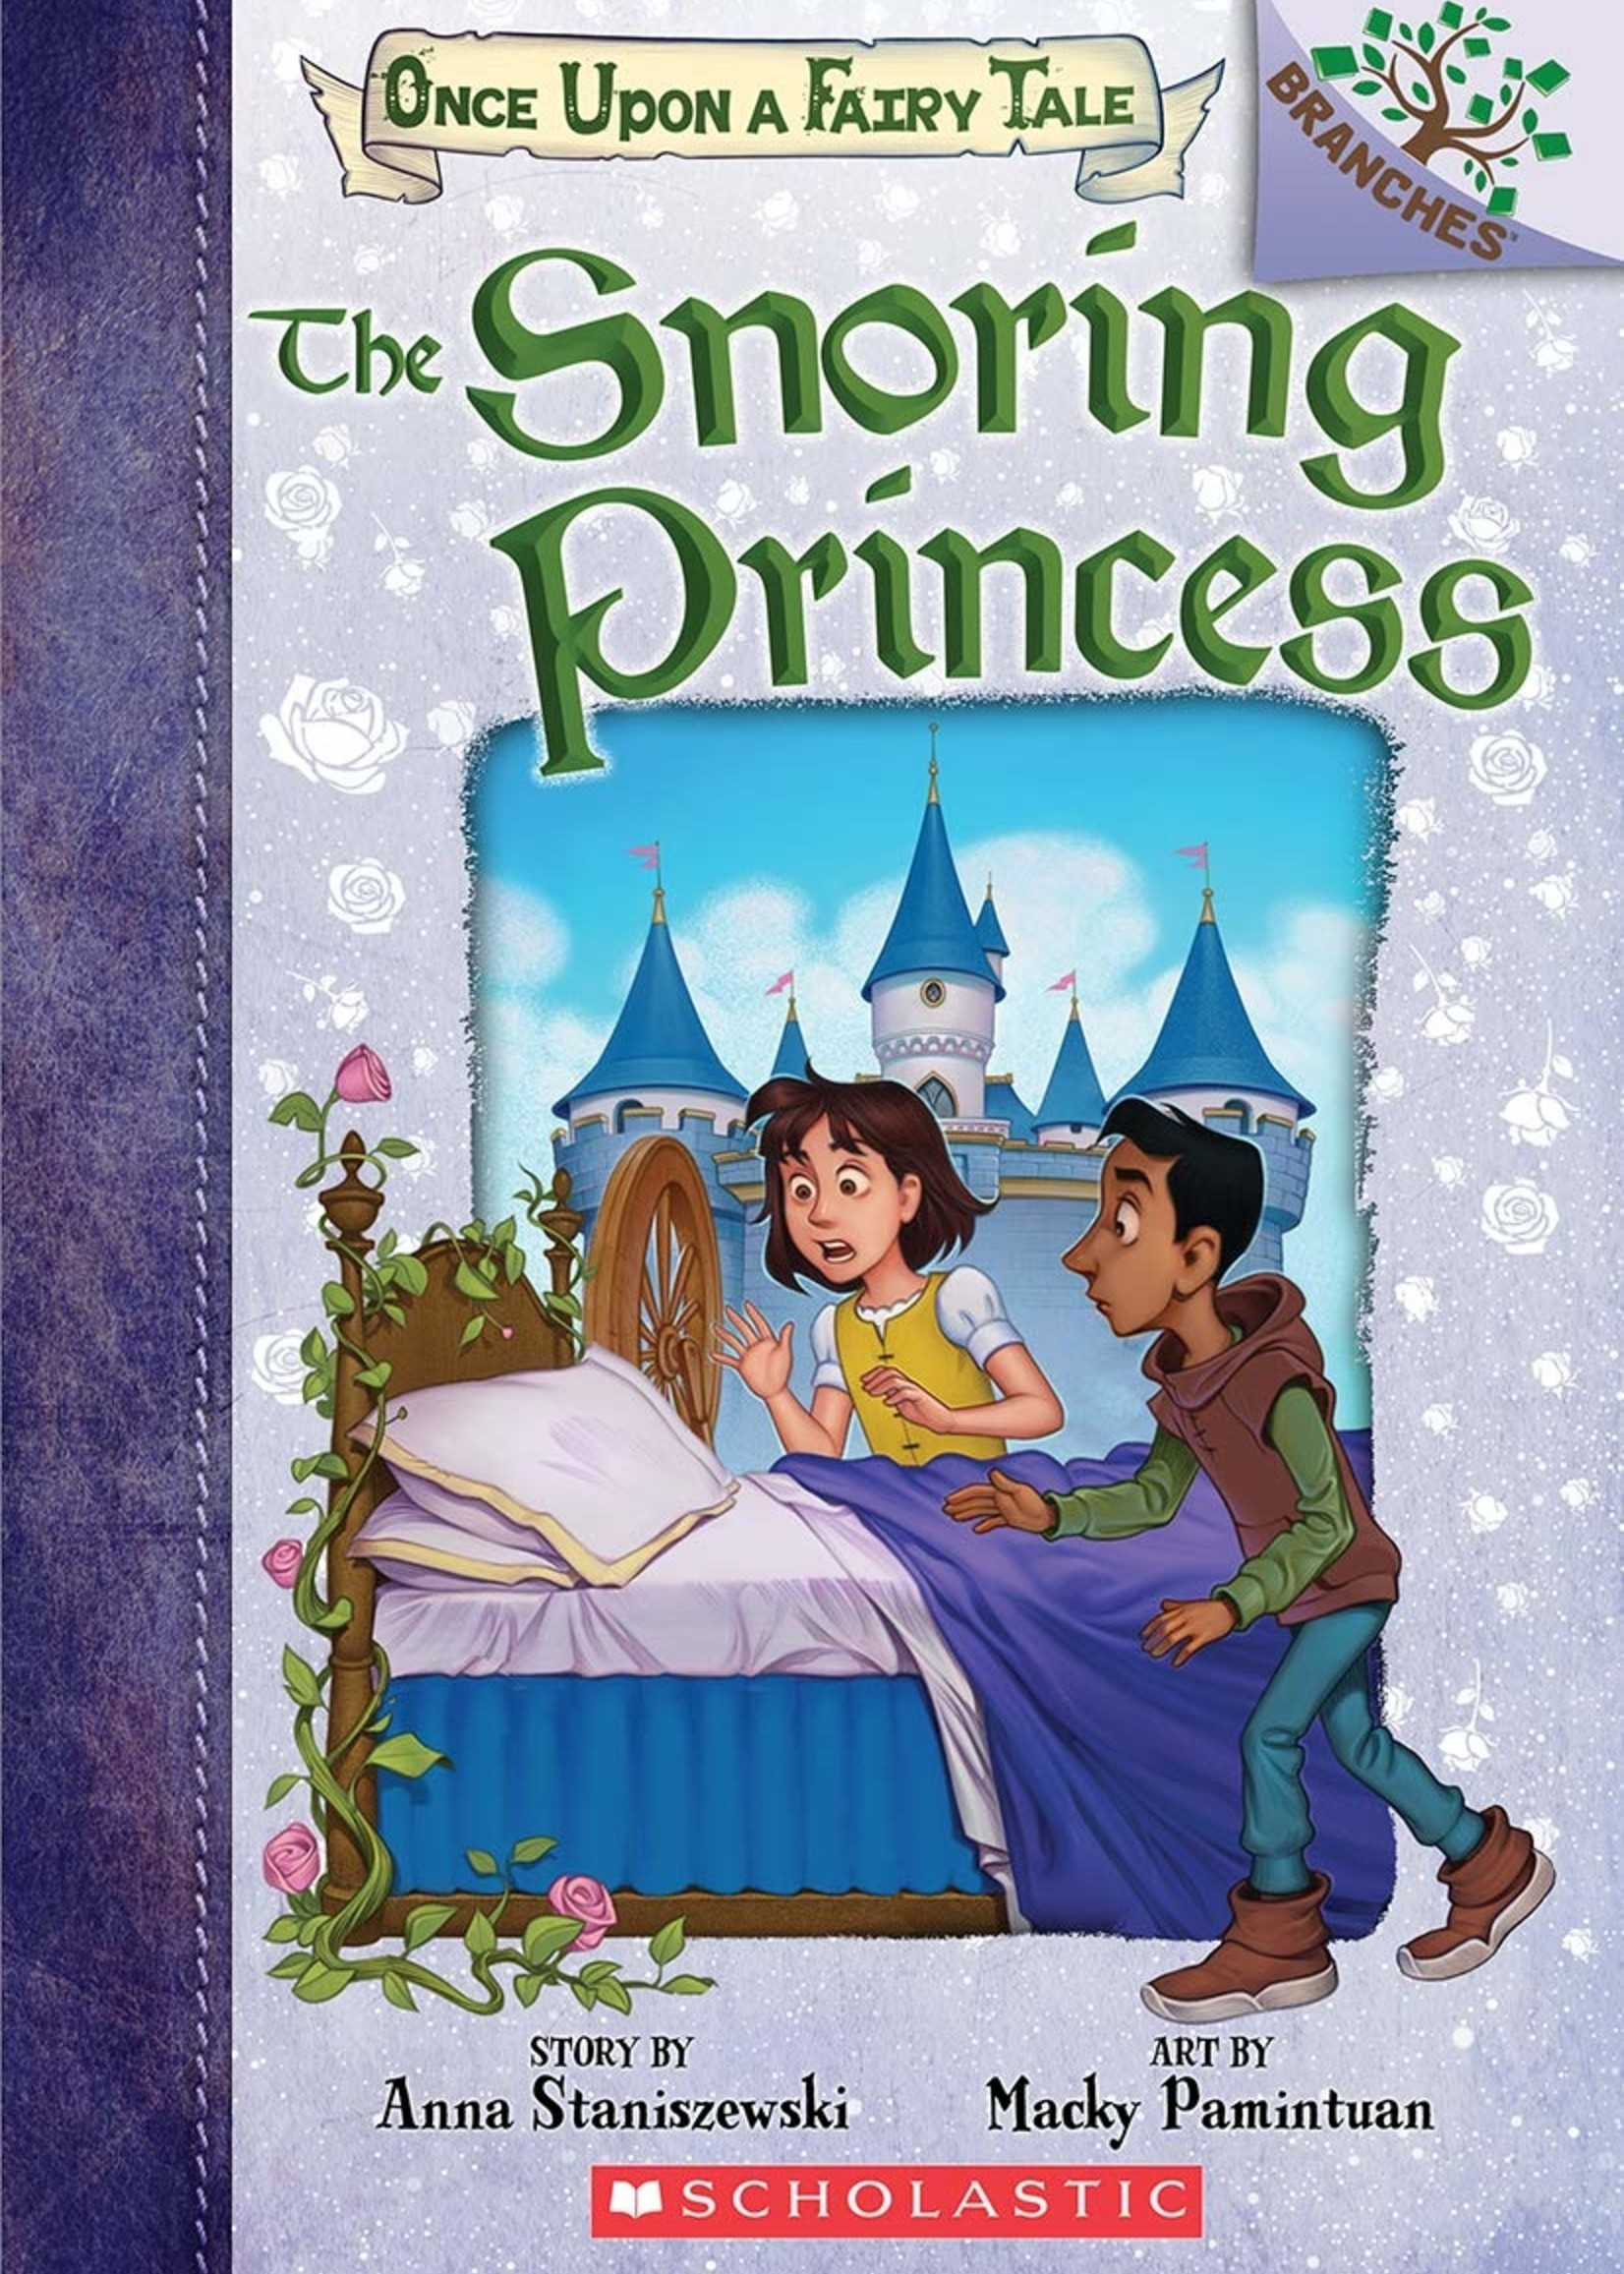 Once Upon a Fairy Tale #04, The Snoring Princess - Paperback